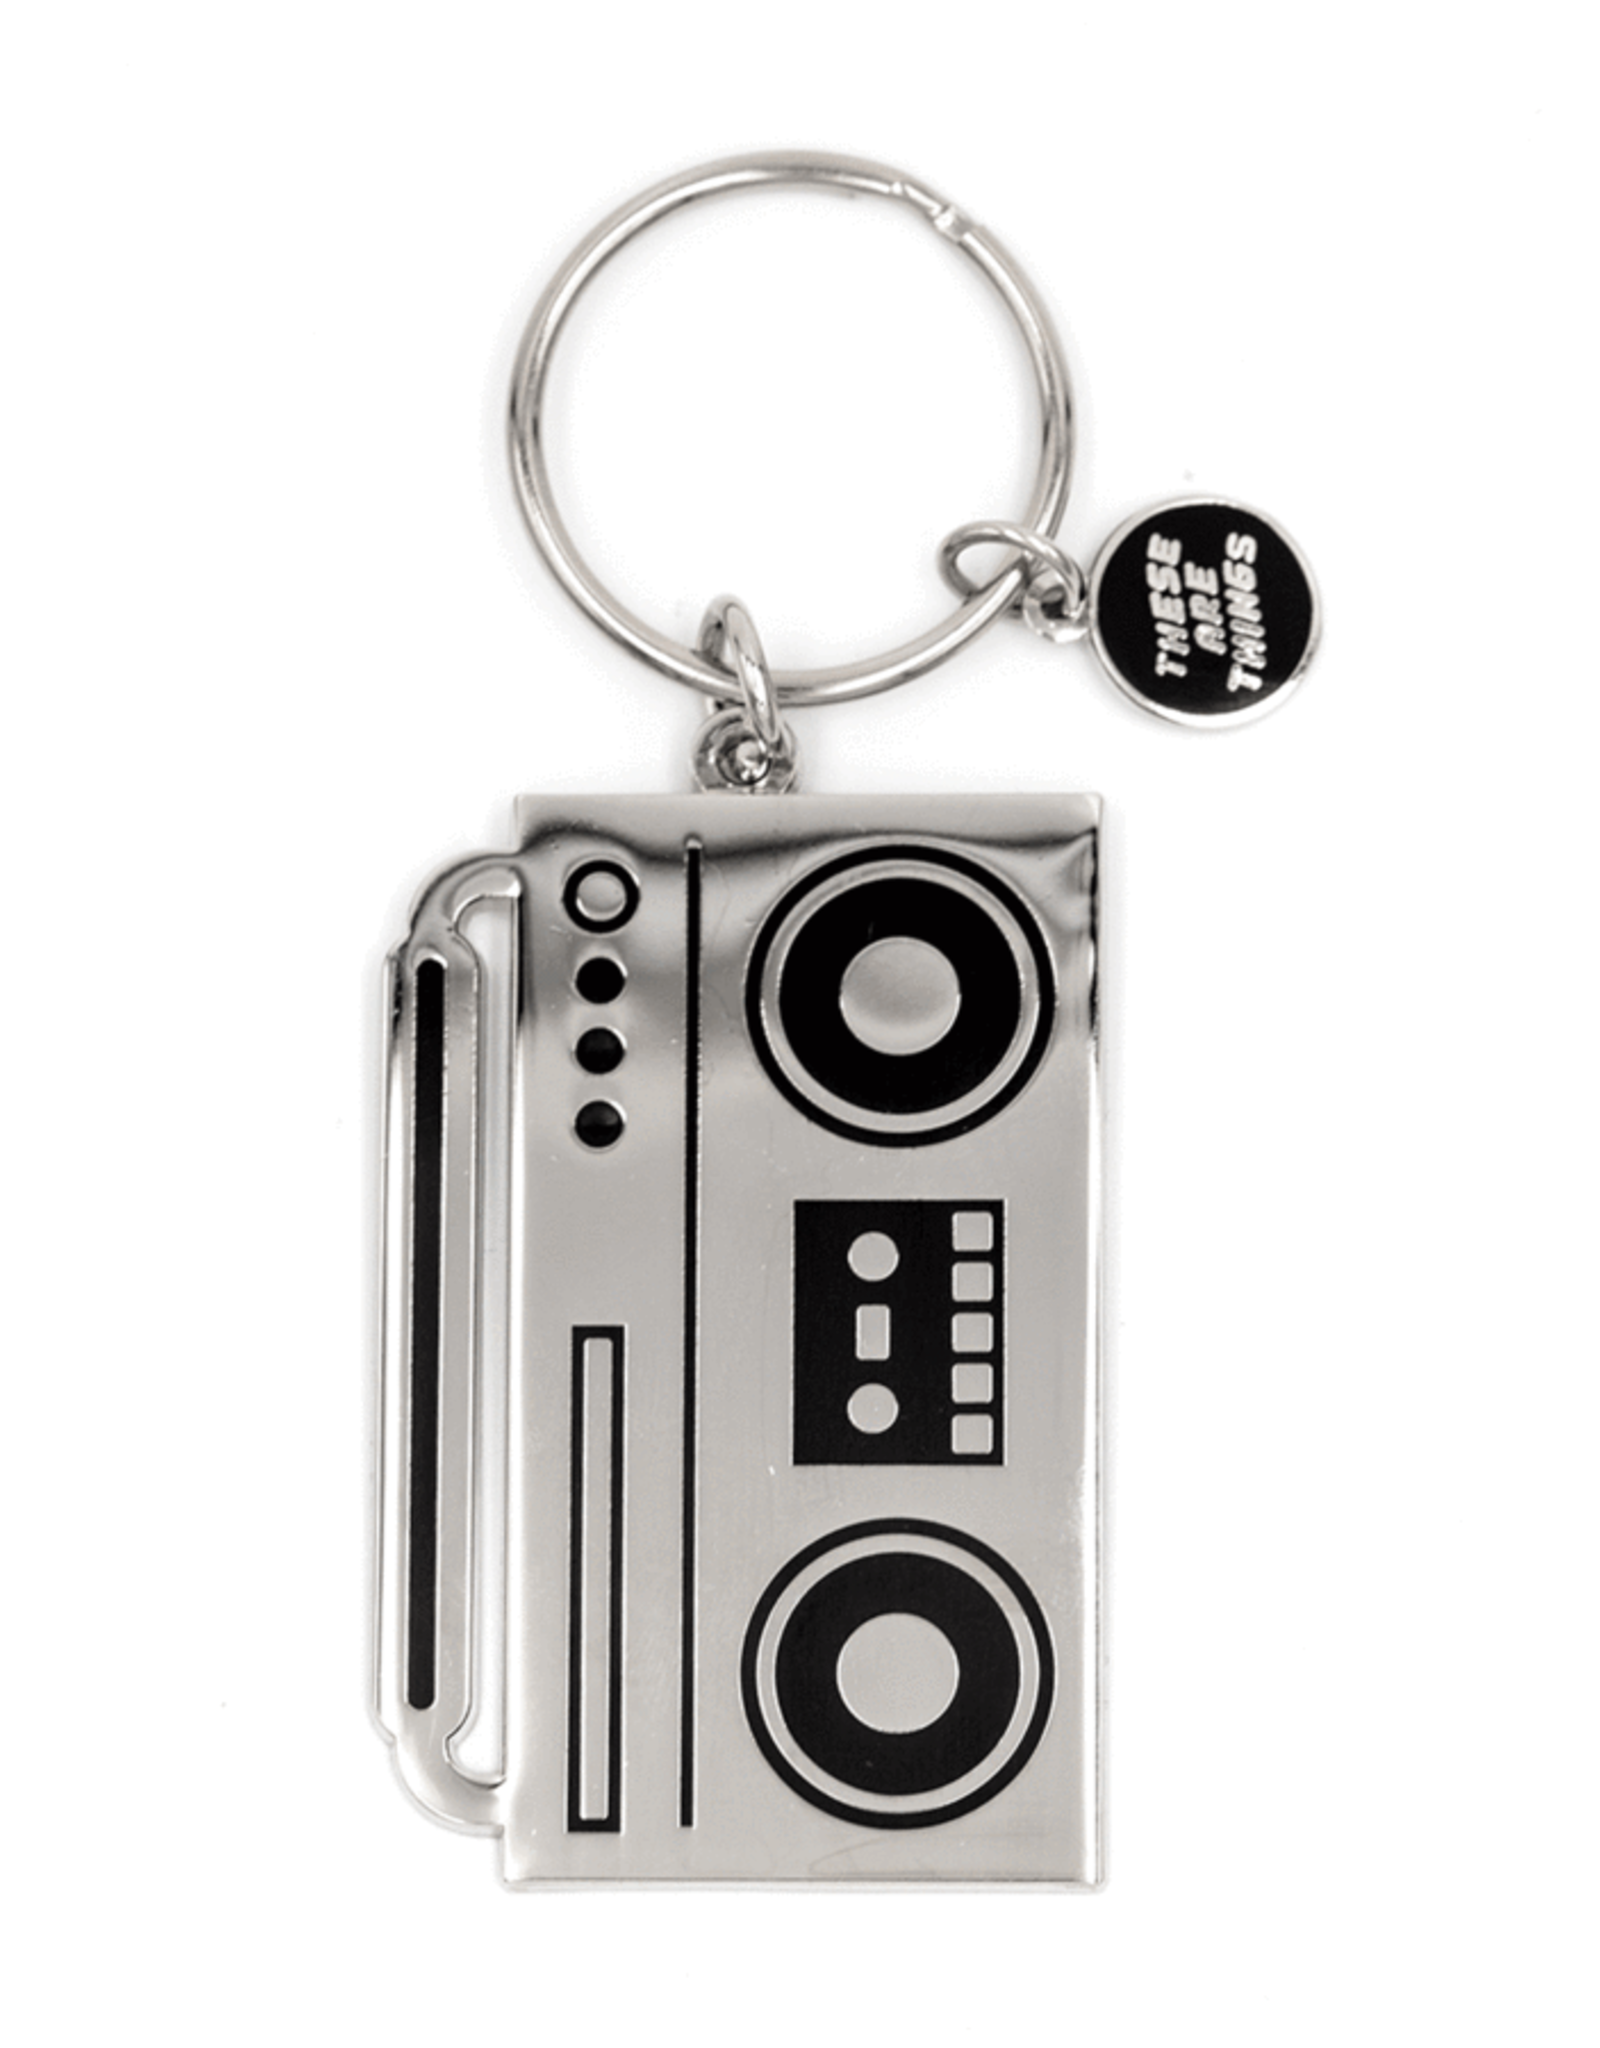 These Are Things Keychain - Boombox